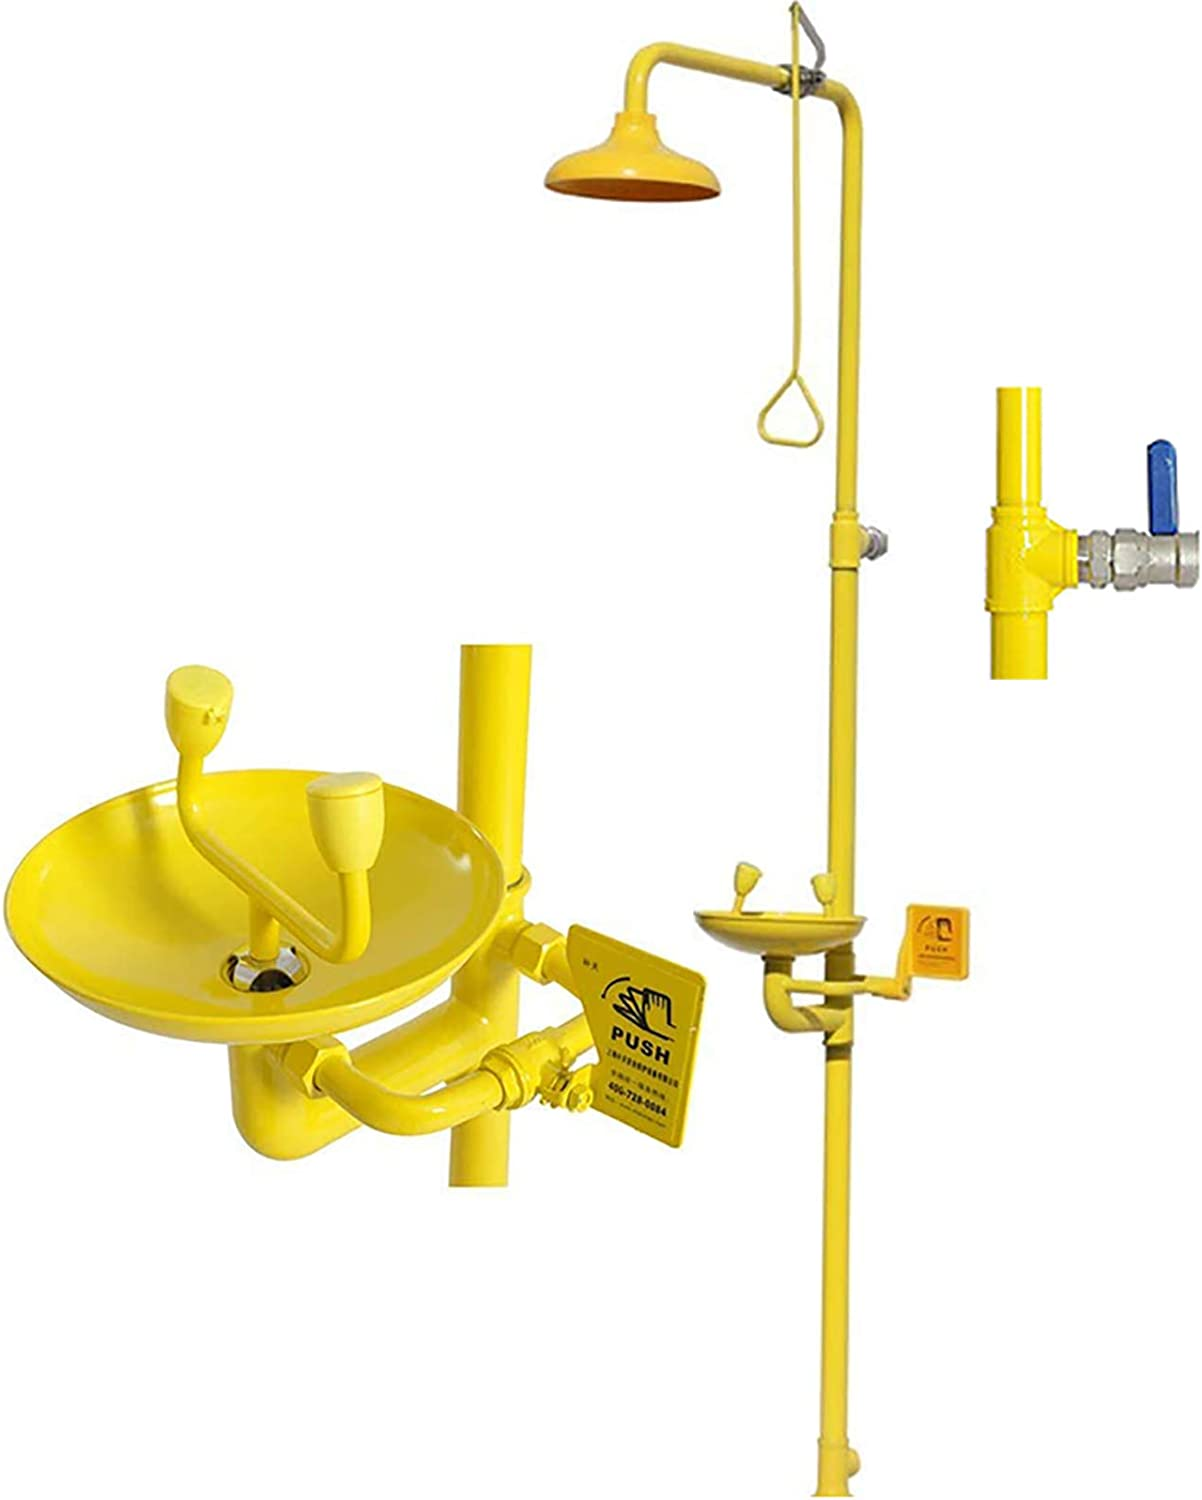 ABS Coating Carbon Steel CGOLDENWALL Combination Emergency Eyewash Shower Station Emergency Eye Wash Eyewash Station Emergency Shower System Eye and Face Wash Washer Station